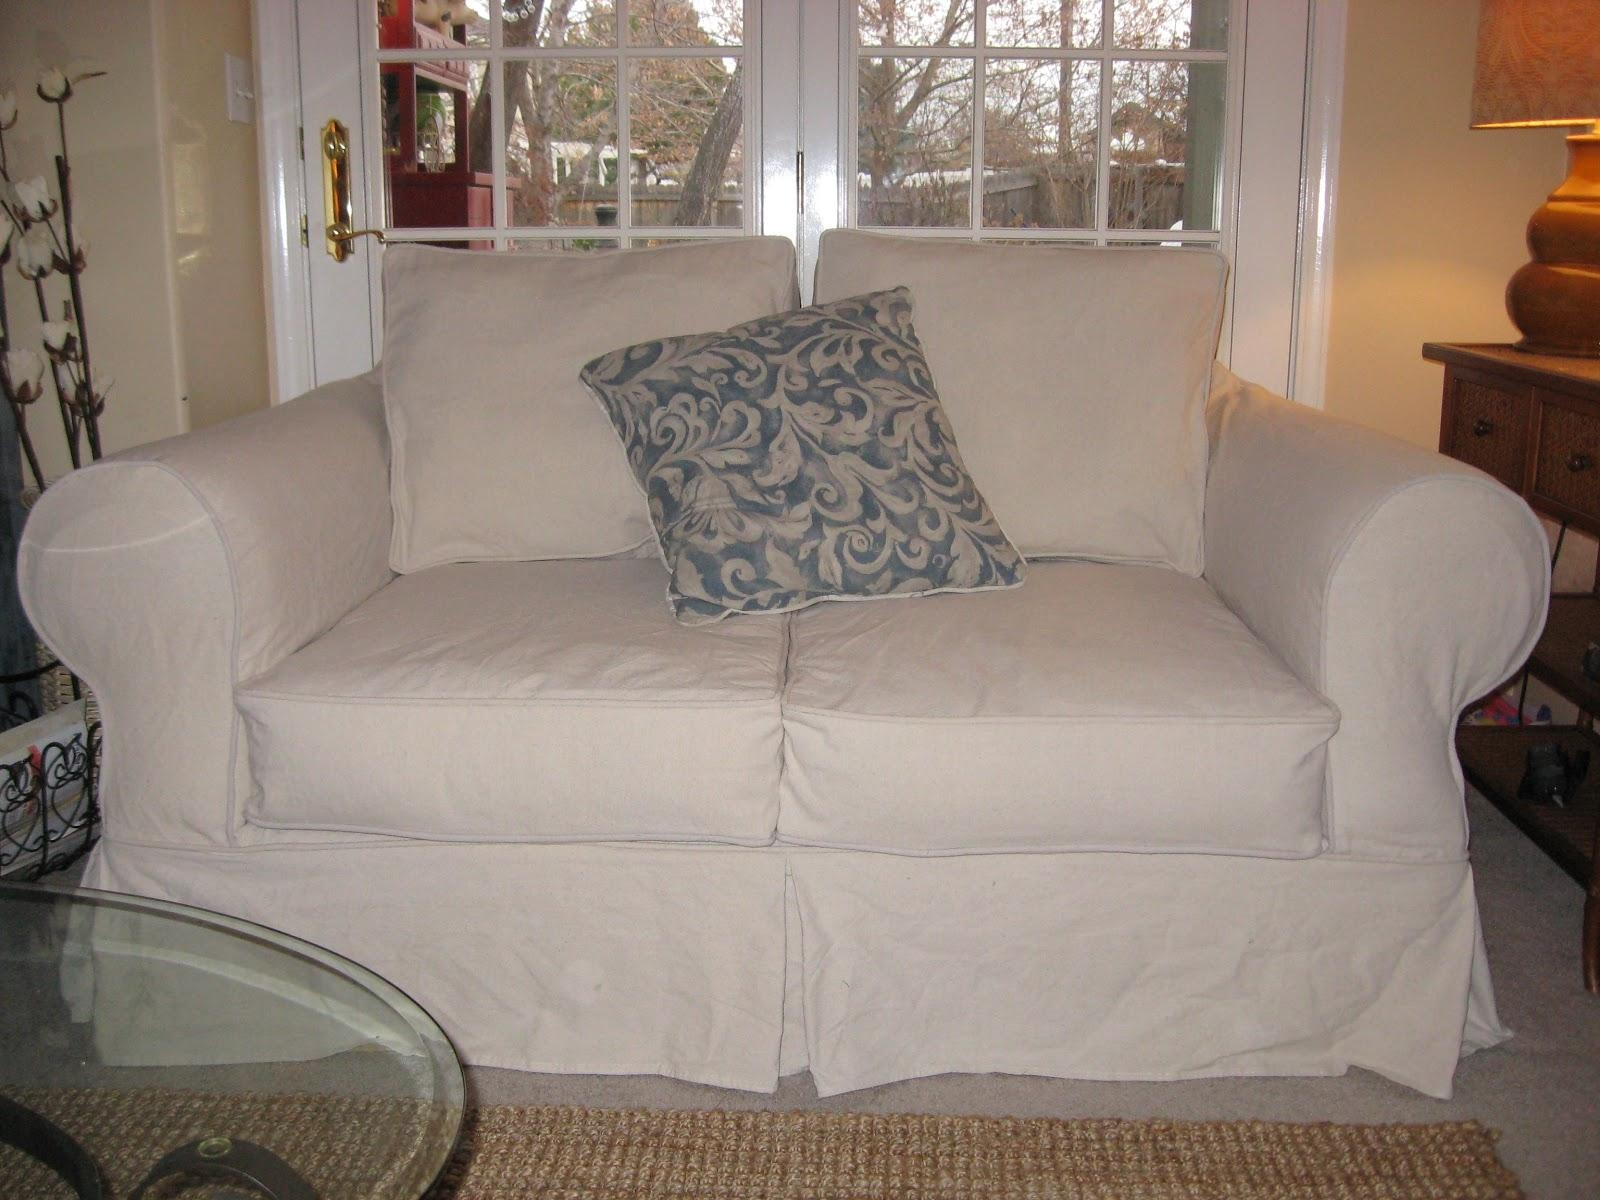 Furniture: Couch Covers At Walmart To Make Your Furniture Stylish with Slipcovers for Chairs and Sofas